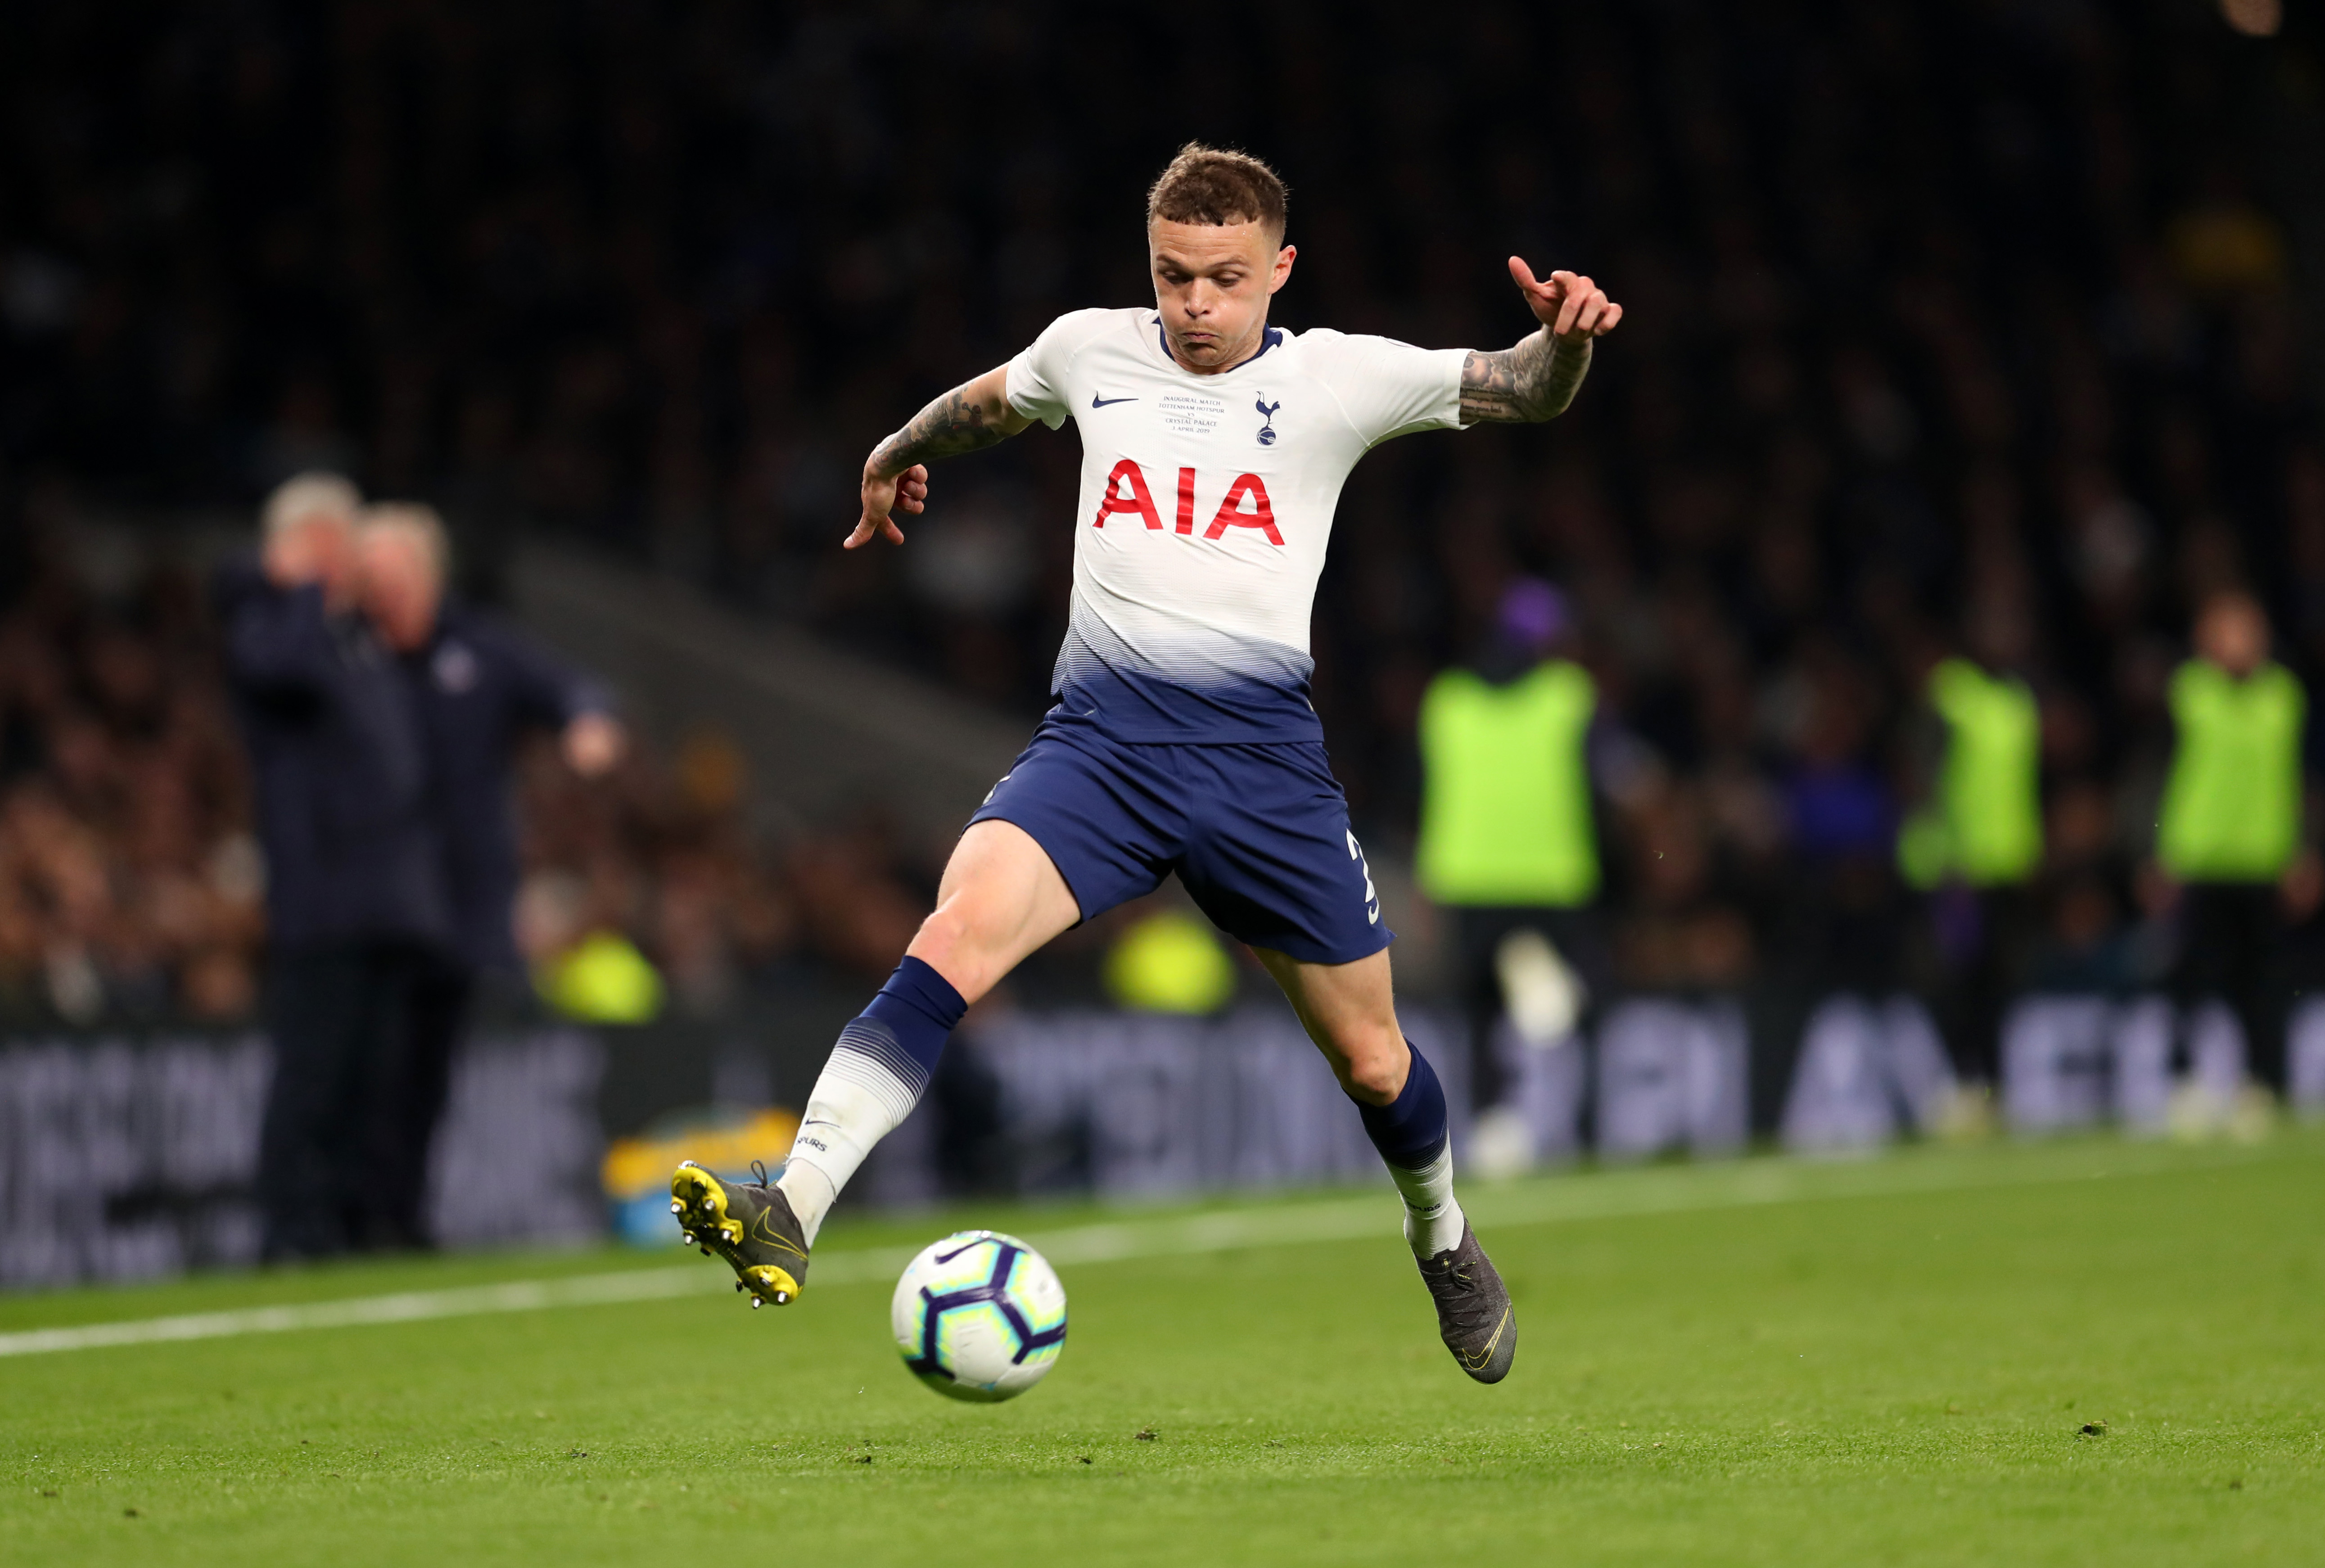 Spurs' Trippier a target for Juventus if they sell Joao Cancelo